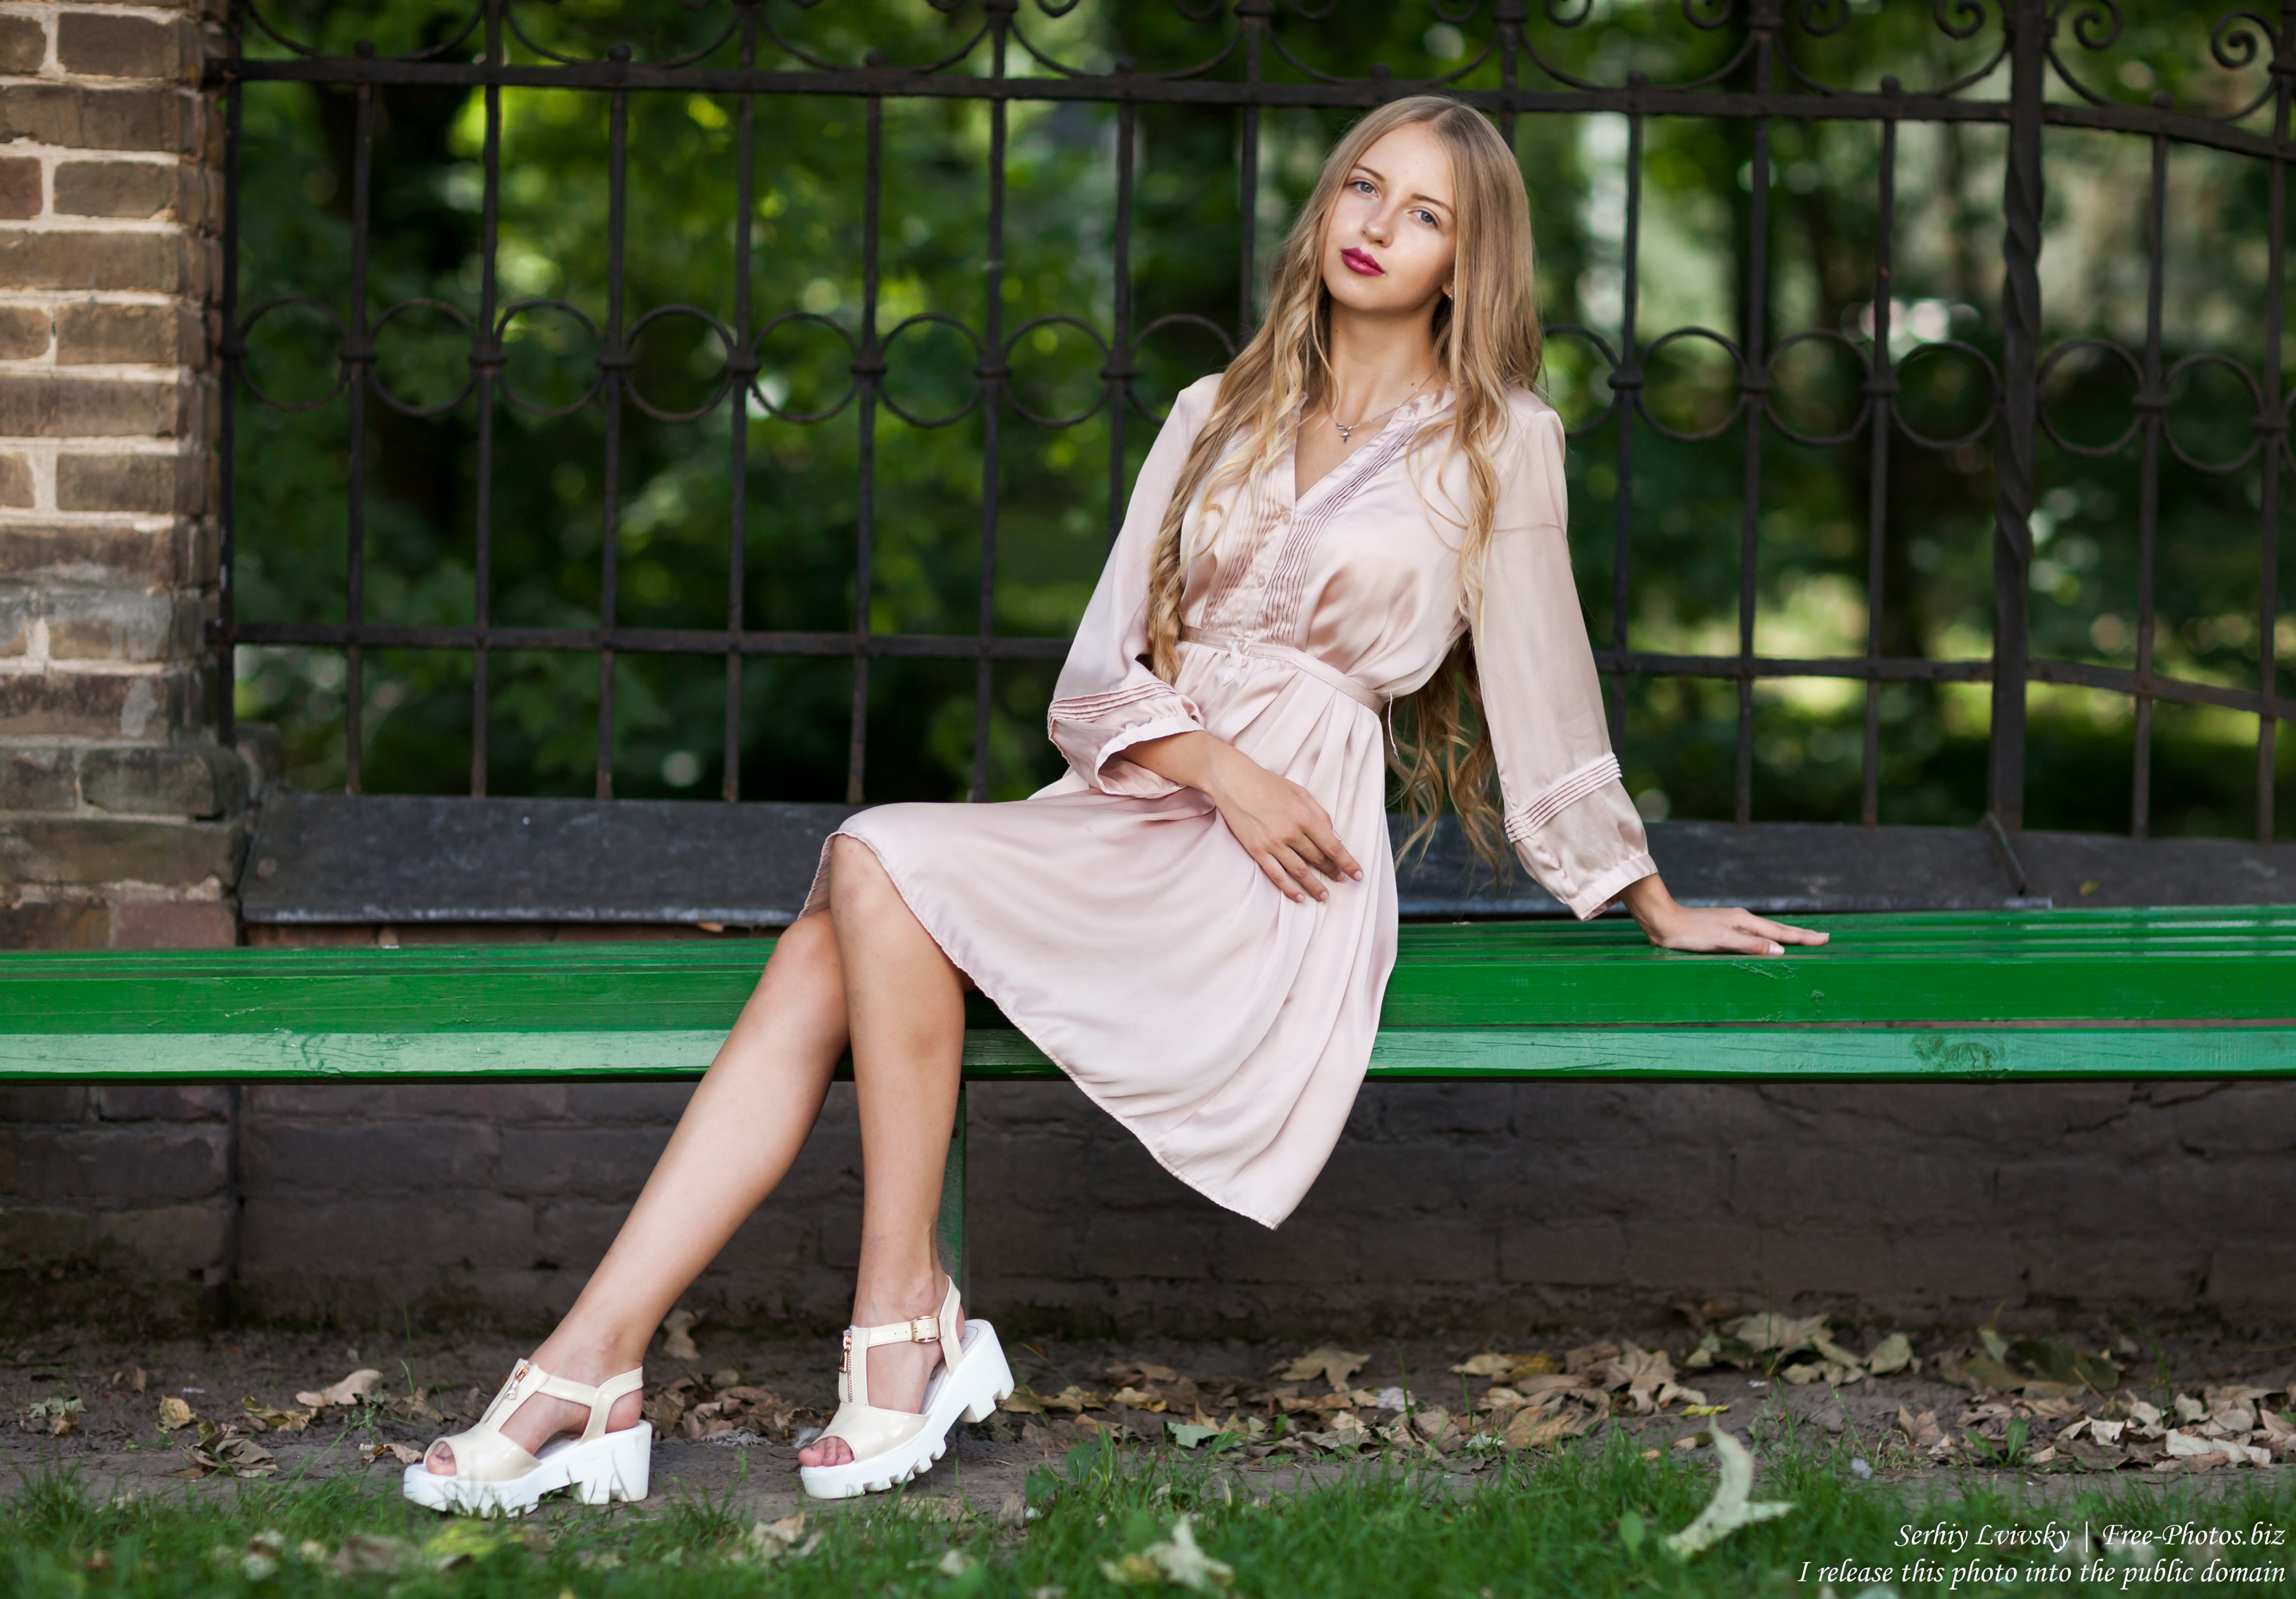 Ania - a 14-year-old natural blonde girl photographed by Serhiy Lvivsky in August 2017, picture 32